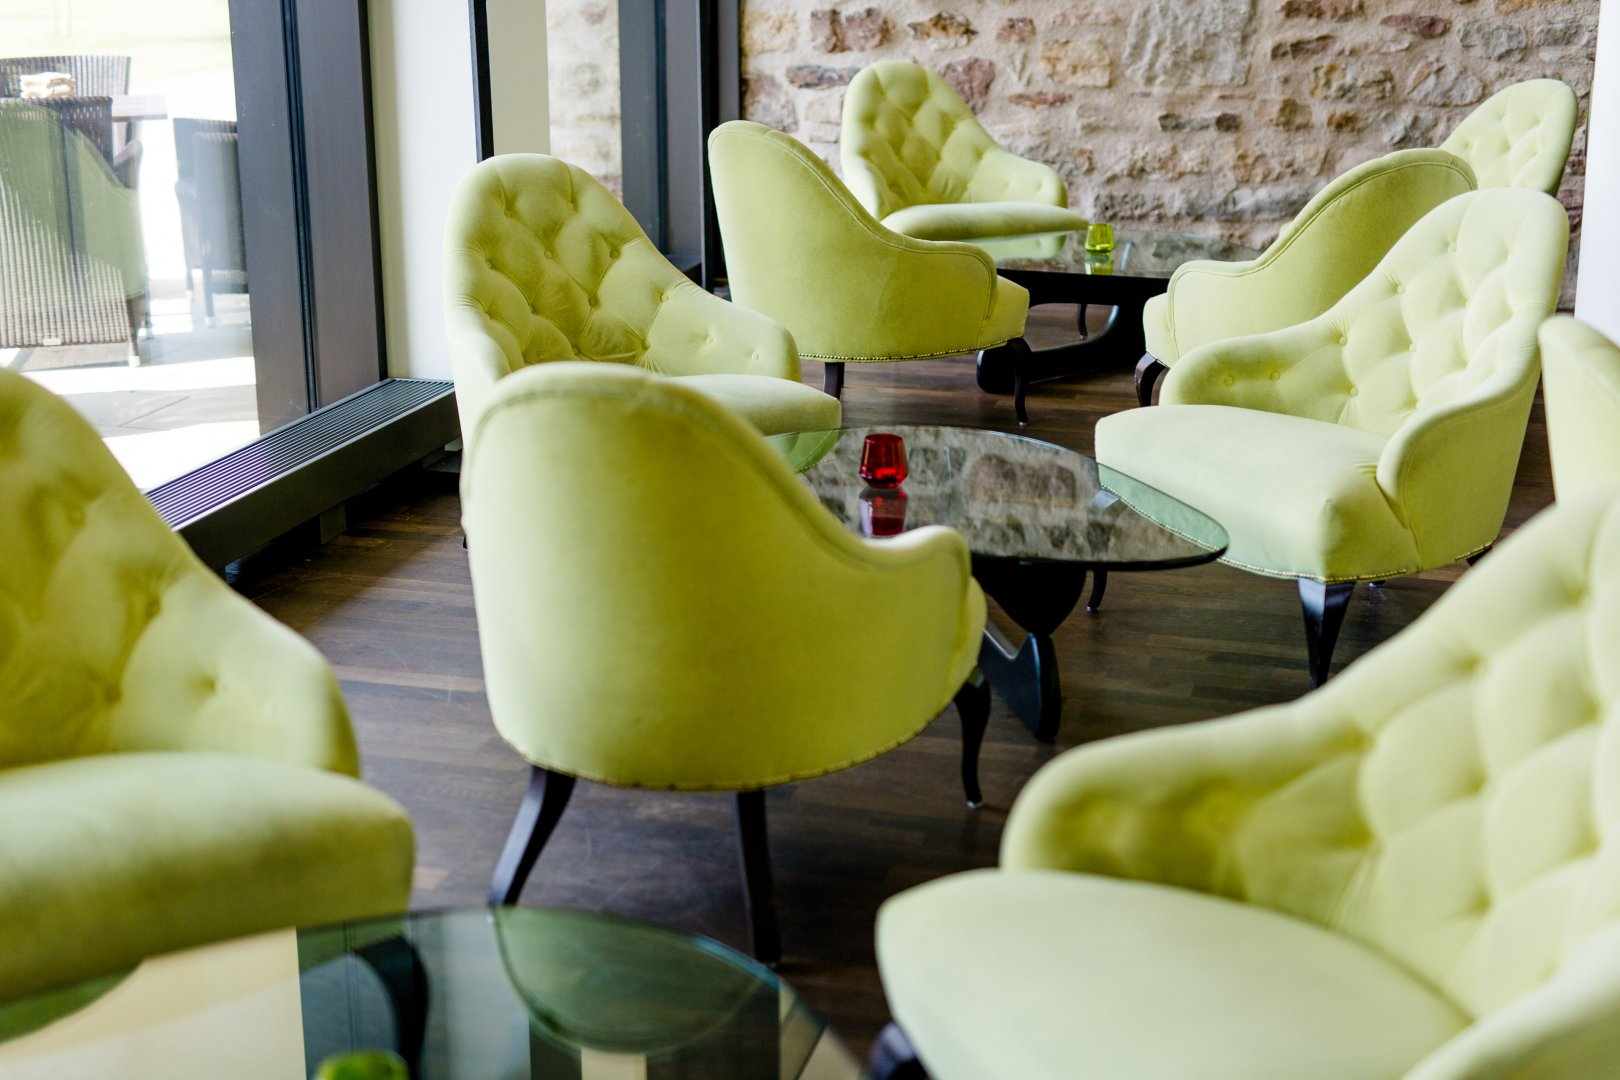 Green Furniture Chair Yellow Room Interior design Living room Table Architecture Armrest Plant Comfort